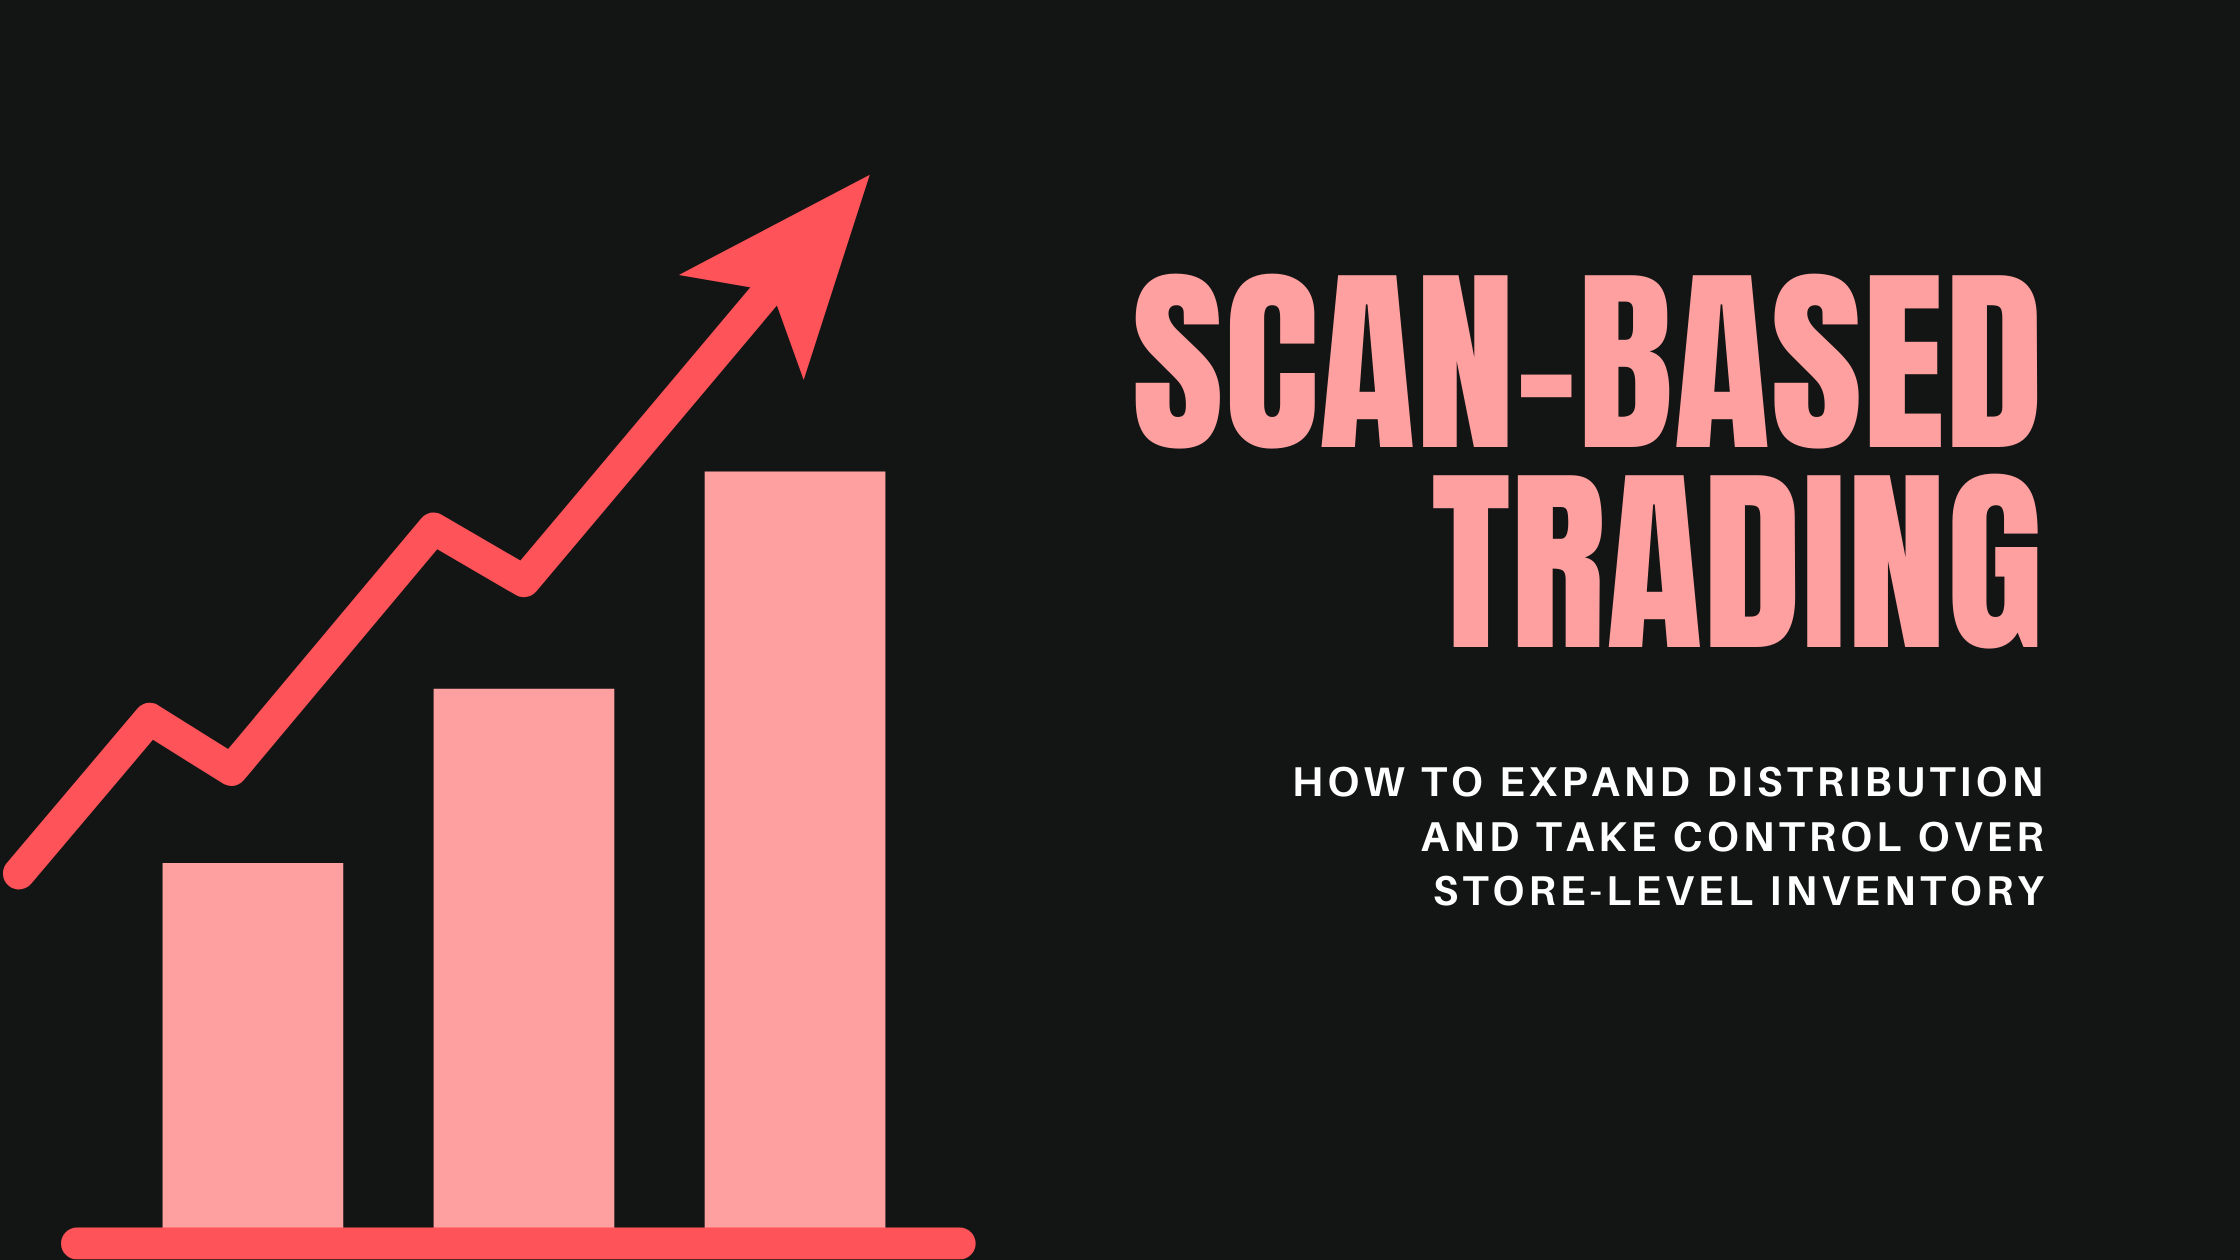 Scan-Based Trading